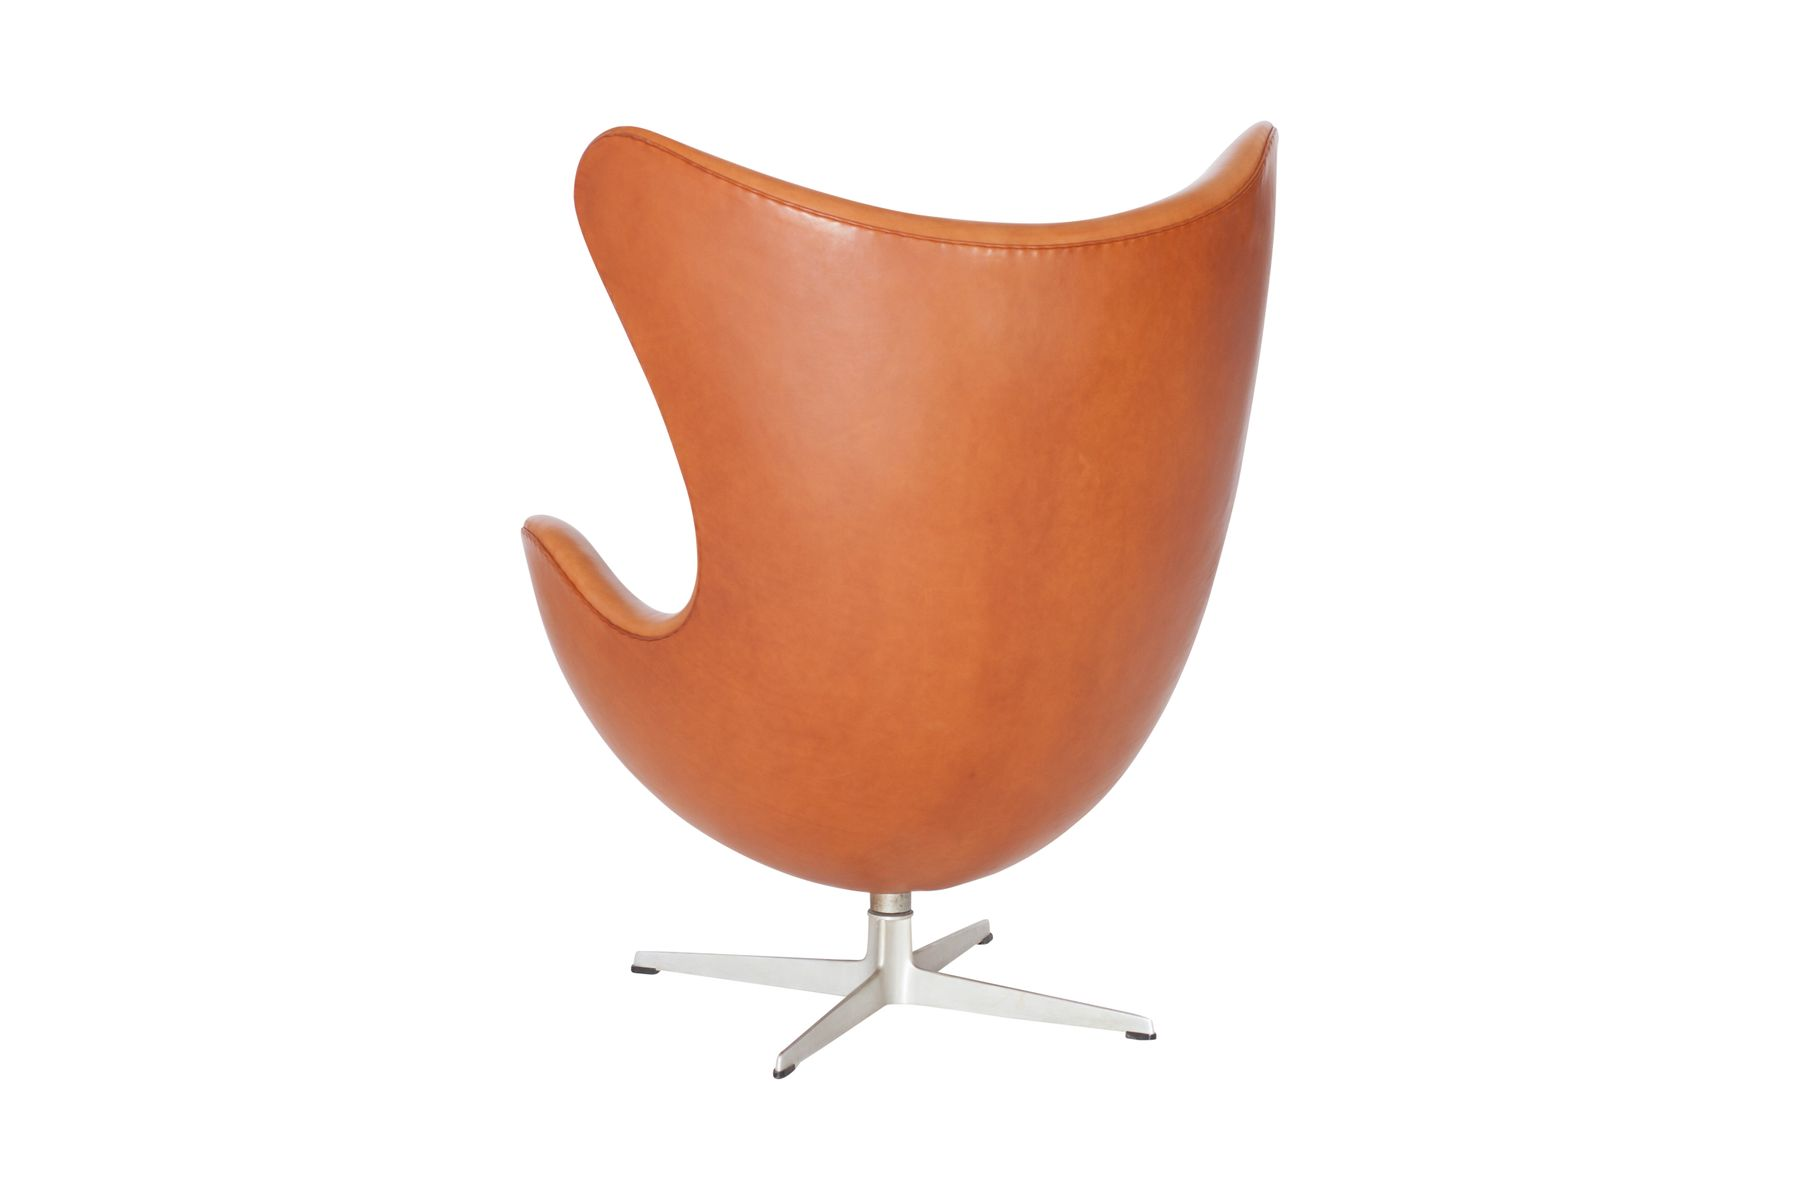 egg chair in cognac leather by arne jacobsen for fritz